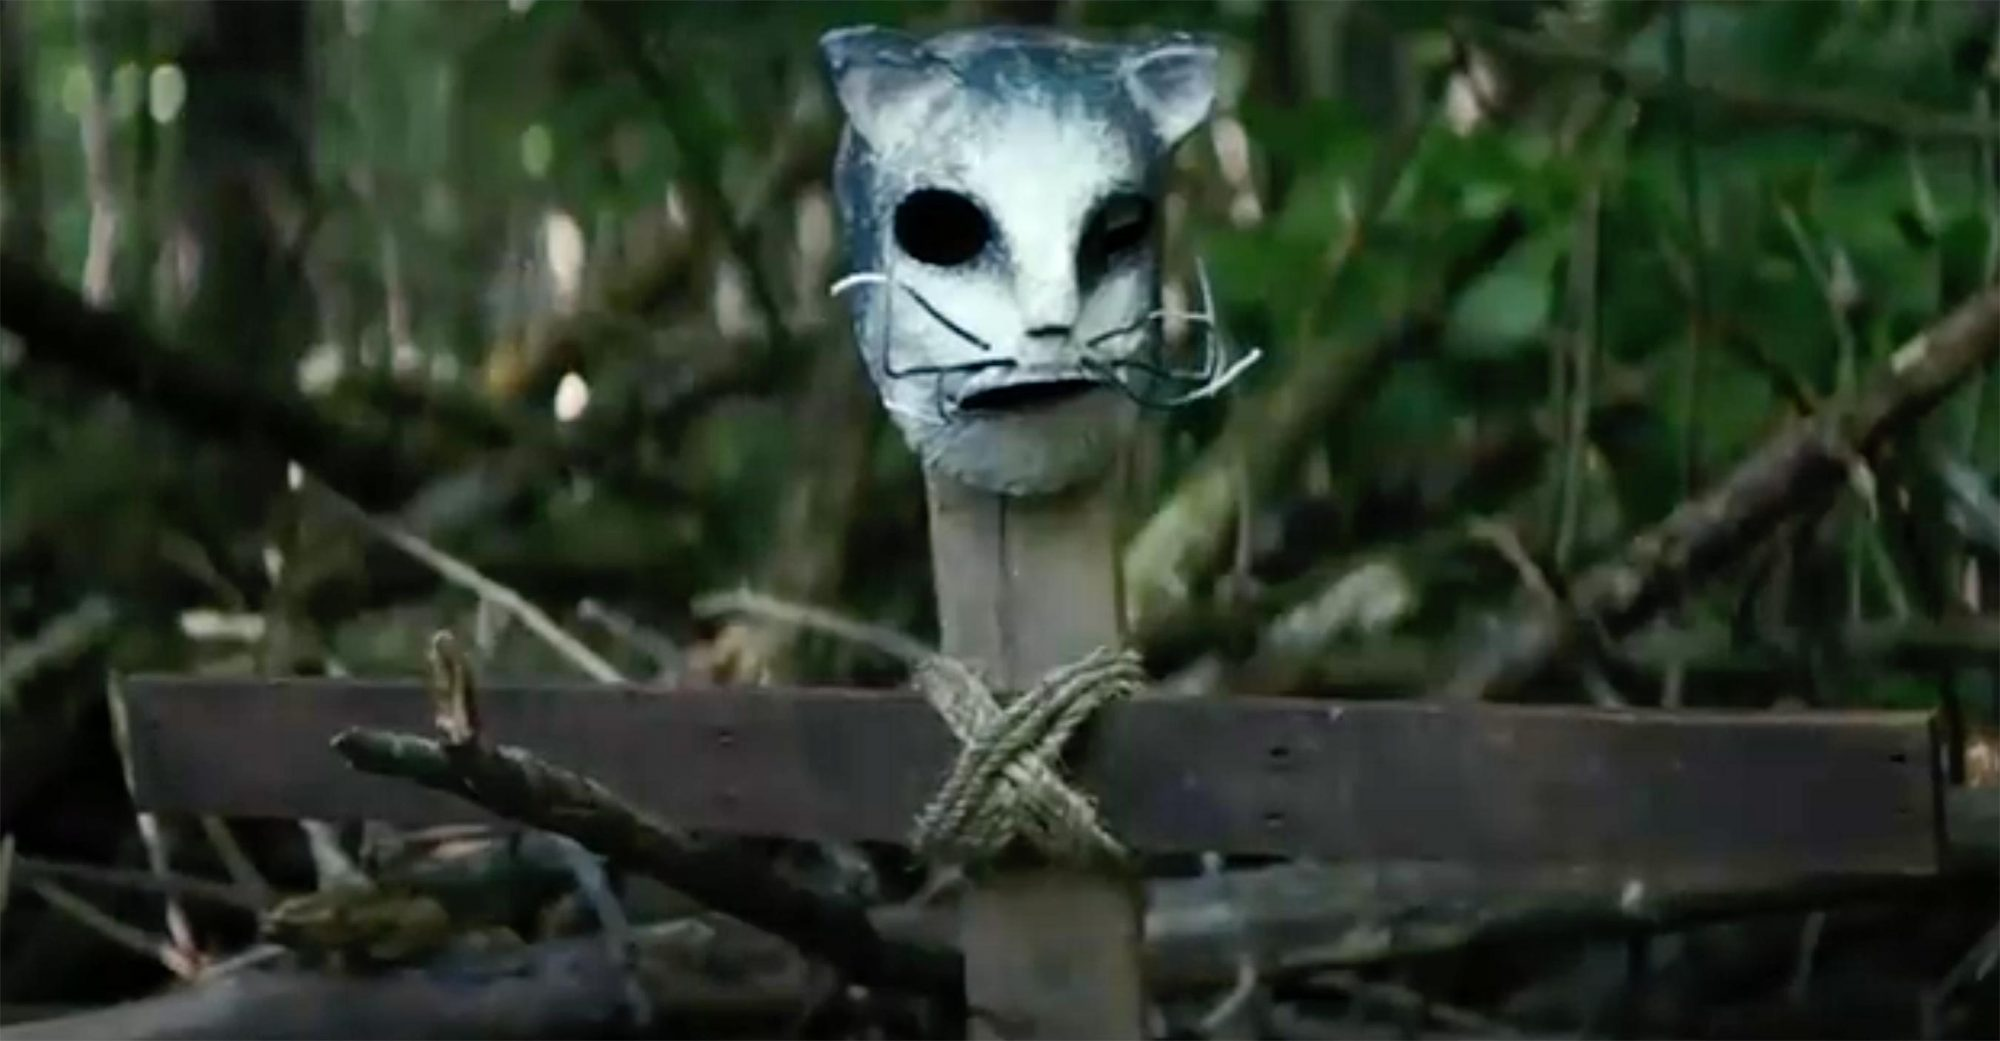 Pet Sematary (screen grab)Credit: Paramount Pictures